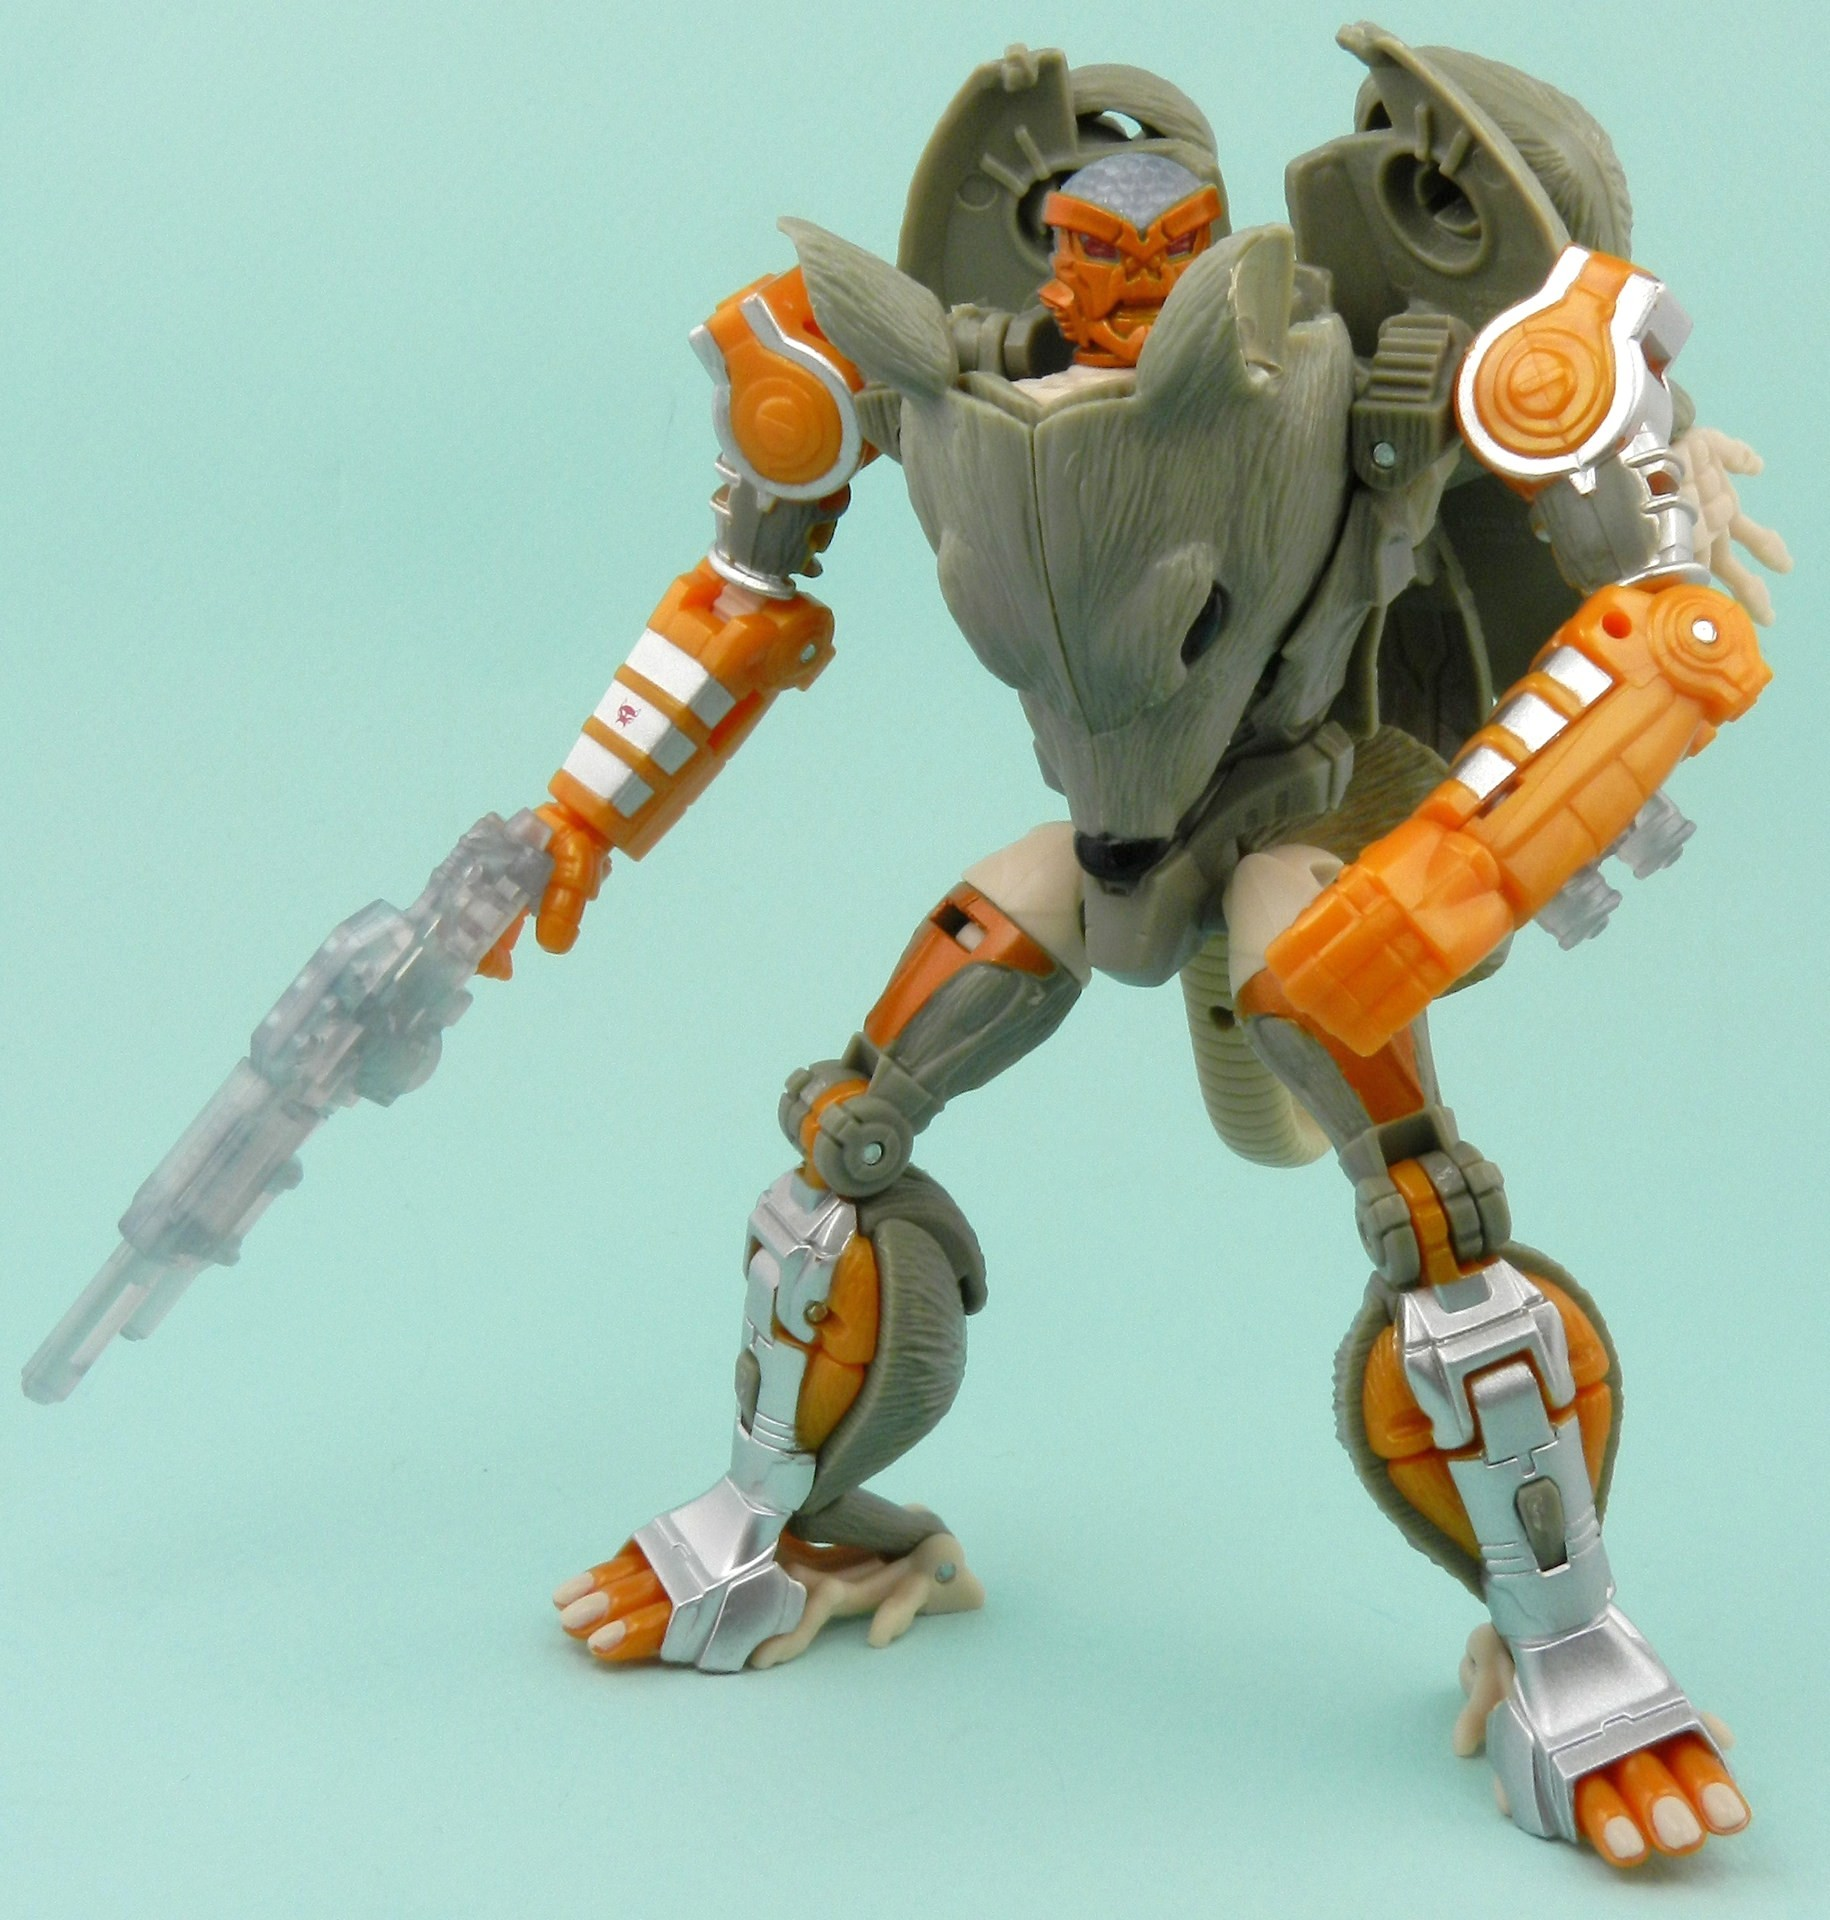 the rattrap The deluxe transmetal rattrap toy was given a white and orange deco and packed in with a 500-piece beast wars metals jigsaw puzzle from central hobby.